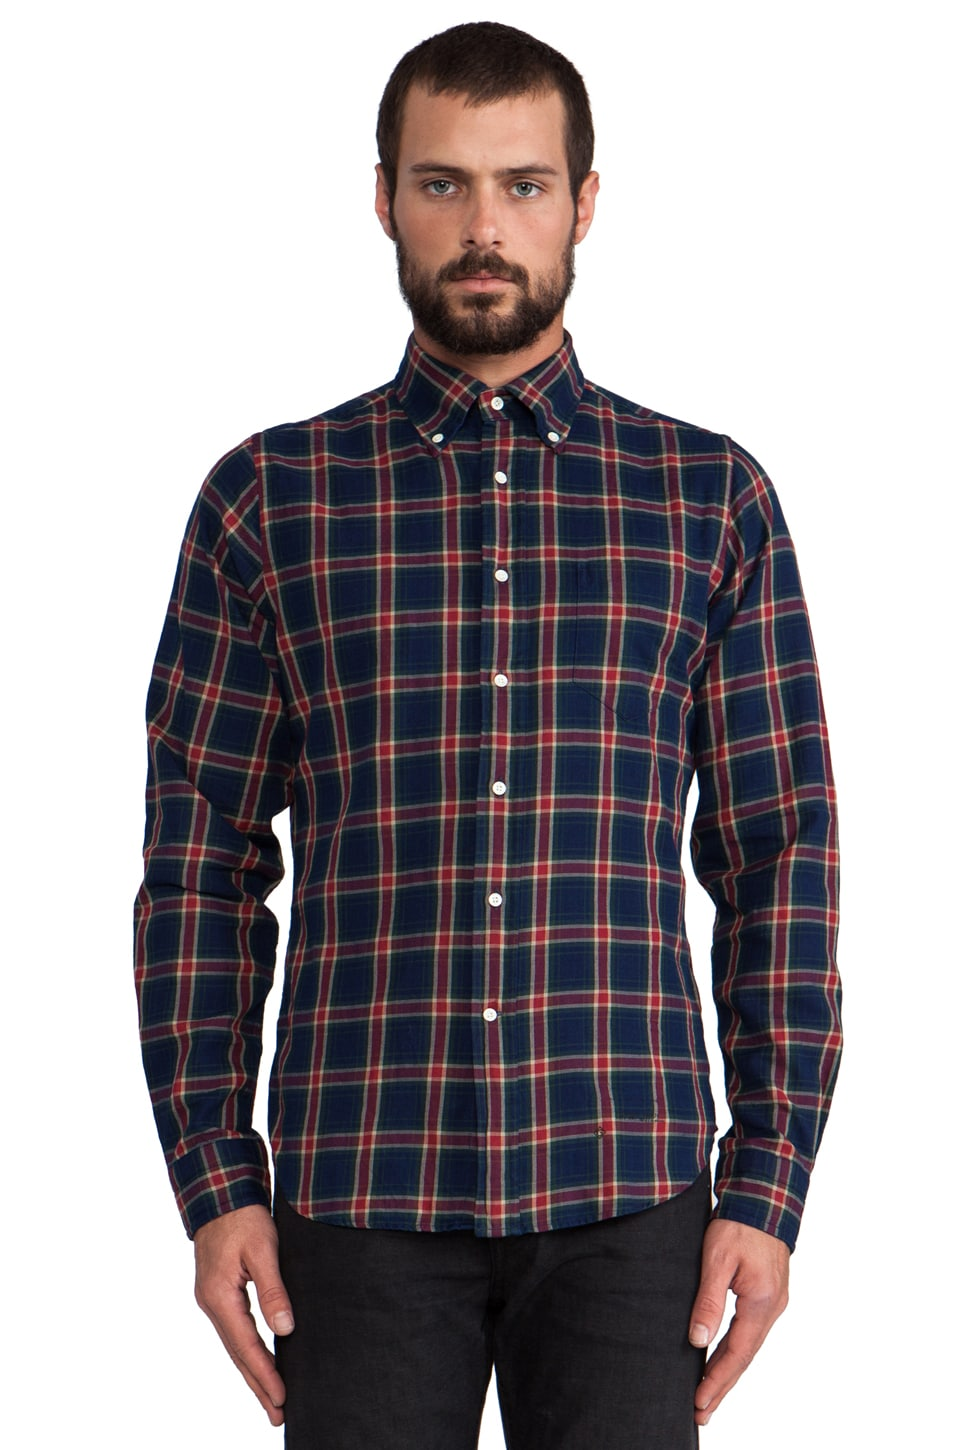 GANT Rugger Indigo Twill Button Down in Blue/Red